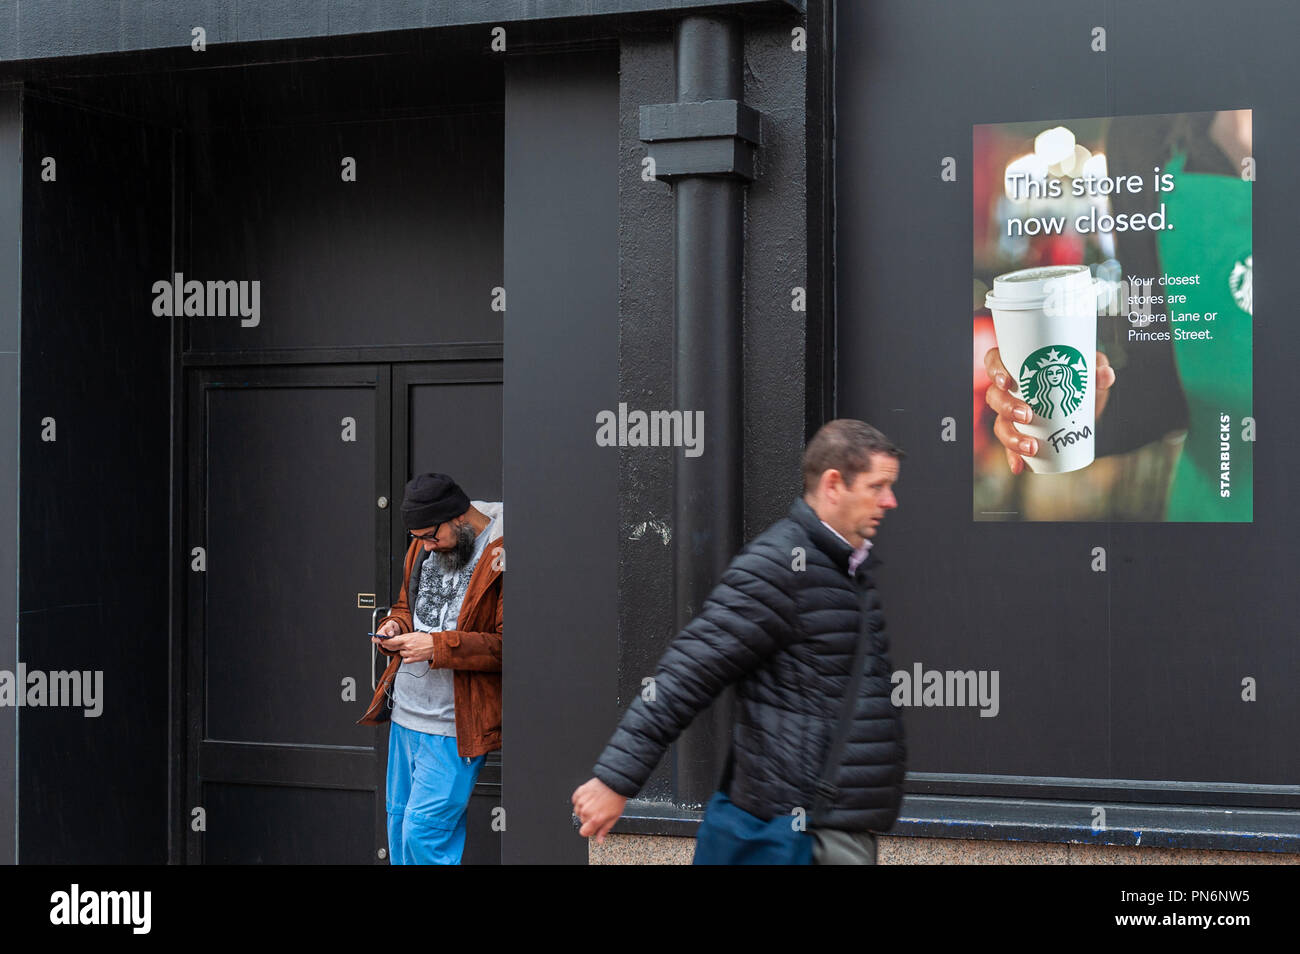 Patrick Street, Cork, Ireland. 20th Sept, 2018. Starbucks Café is closed after a year of battles with An Bord Pleanála, the Irish Planning Board. The building used to house a mobile phone shop but Starbucks took it over and didn't apply for planning permission. Starbucks then removed chairs, tables and customer toilets and claimed that made it a shop, which the planning board objected to. Starbucks finally moved out this week. Credit: Andy Gibson/Alamy Live News. - Stock Image